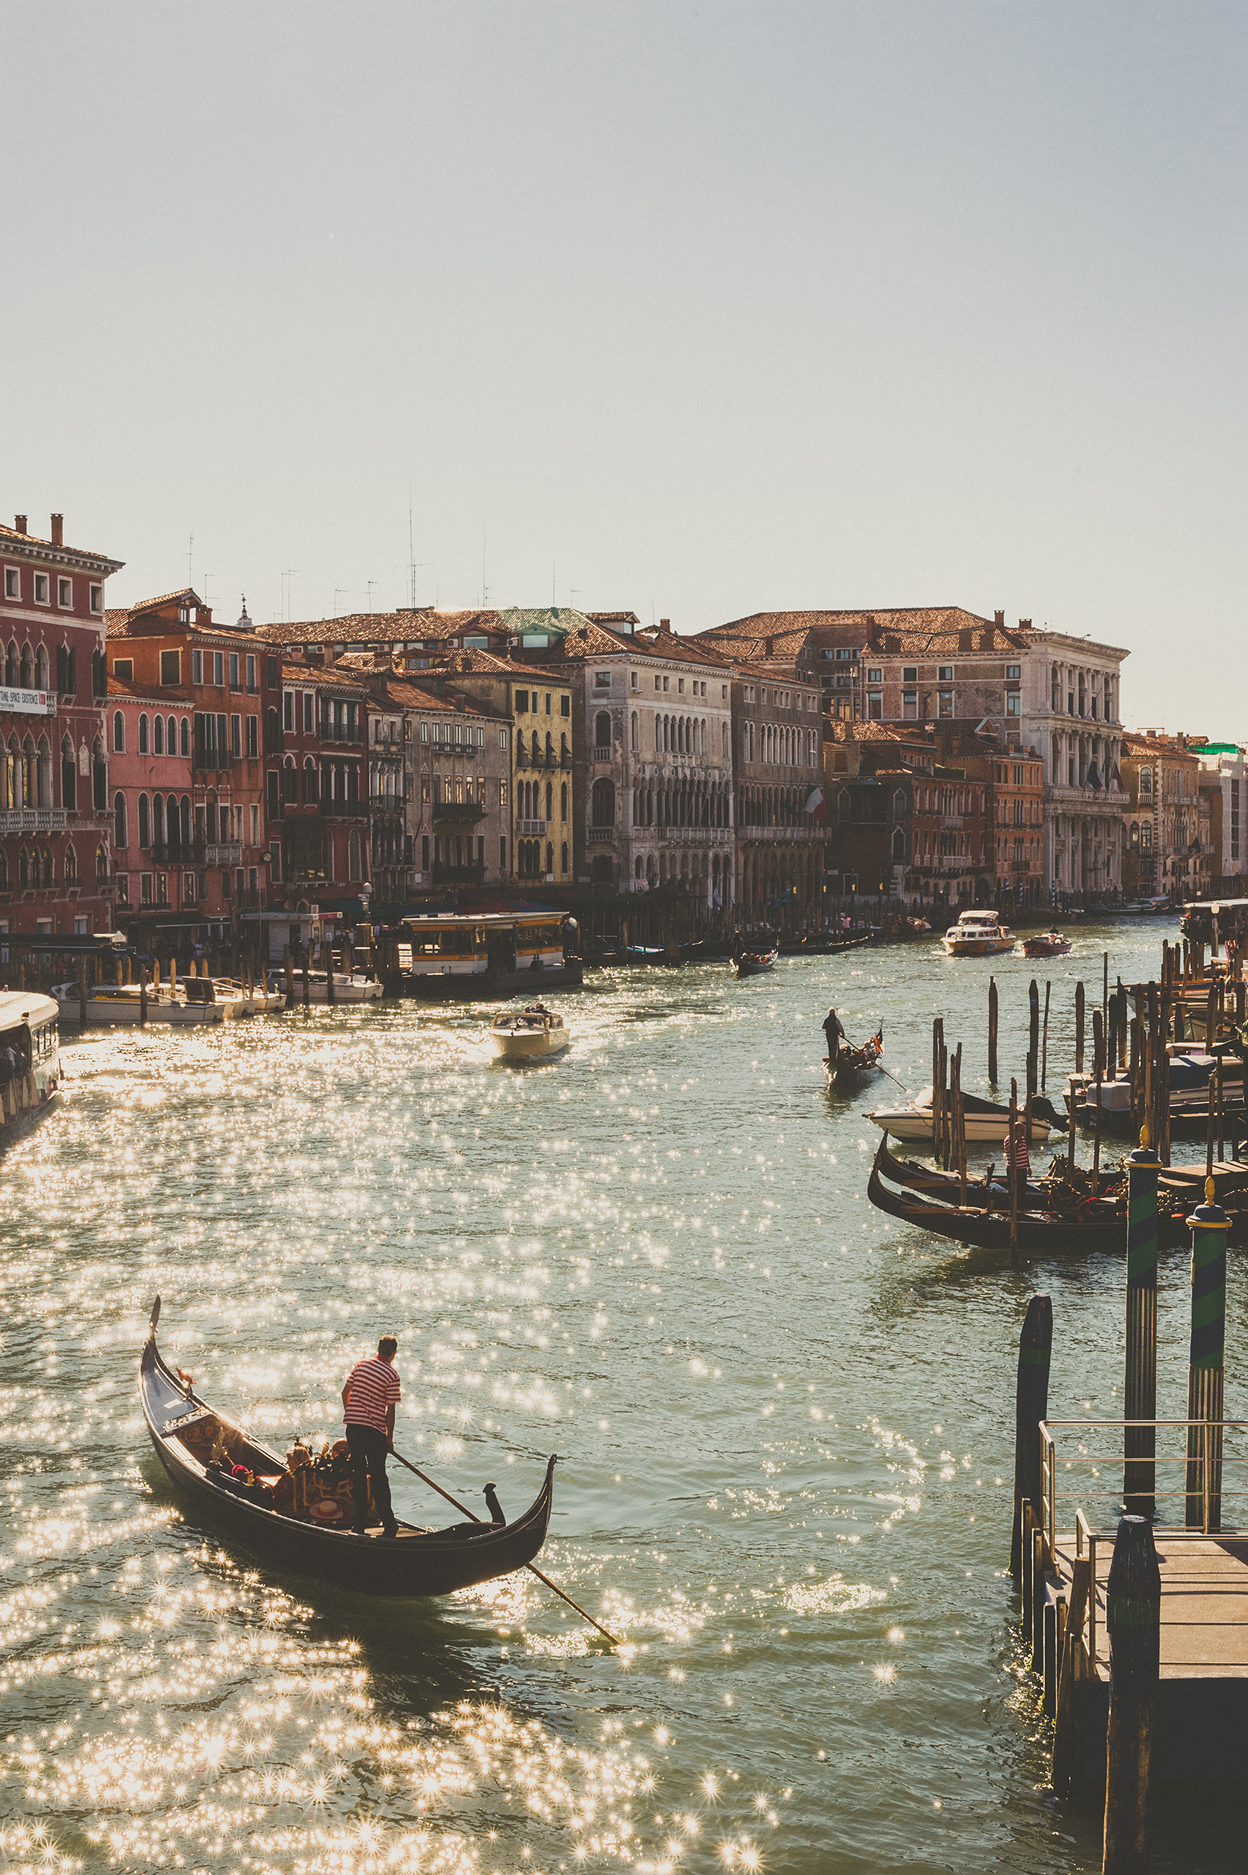 KC_Lifestyle_Photographer_OutdoorPhotography_Adventure_Photography_Venice_Italy21.jpg